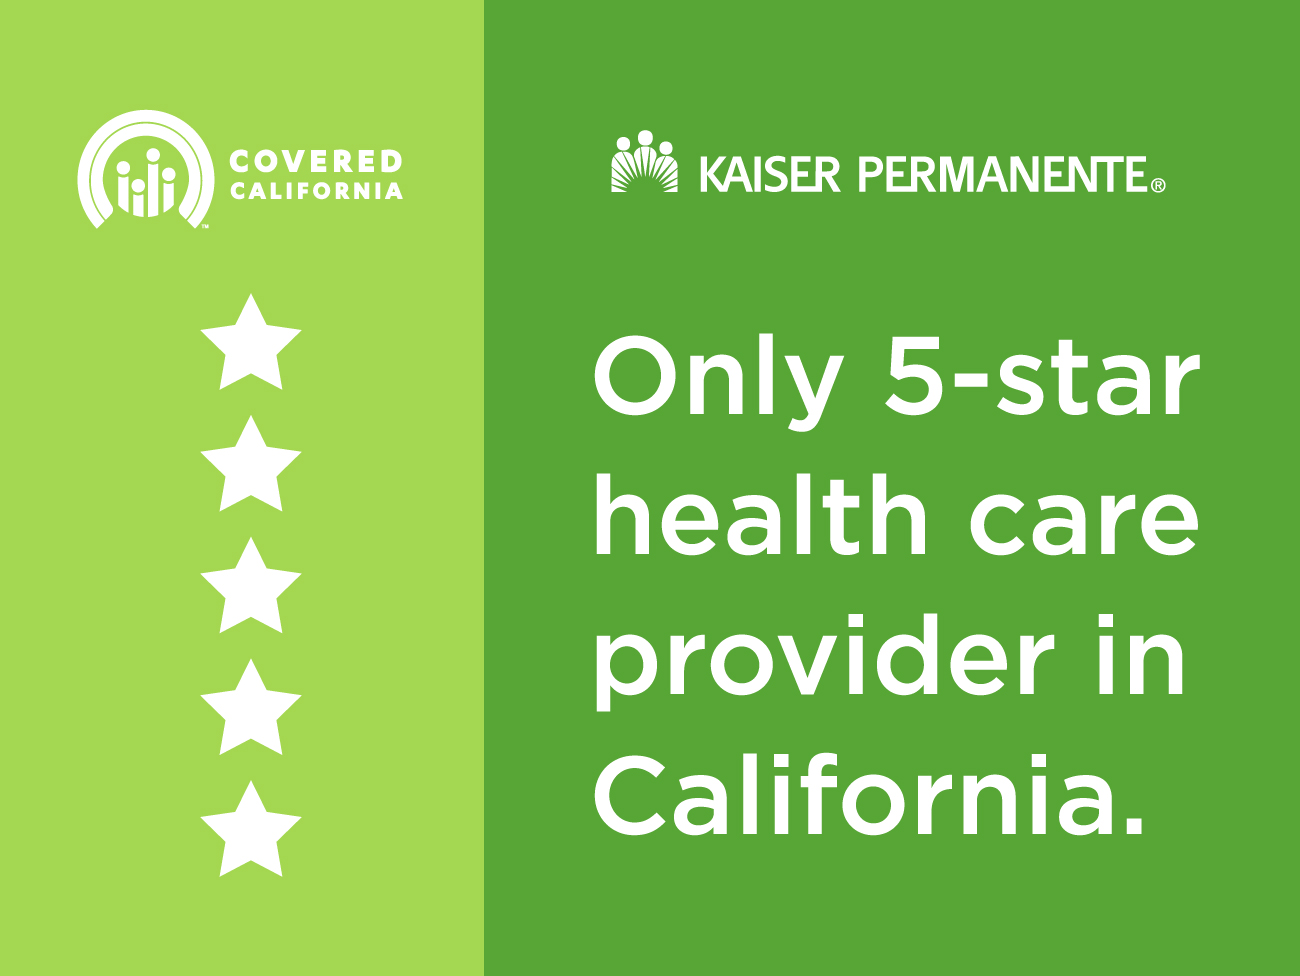 Covered California and Kaiser Permanente logos with 5 stars and text 'Only 5-star health care provider in California.'